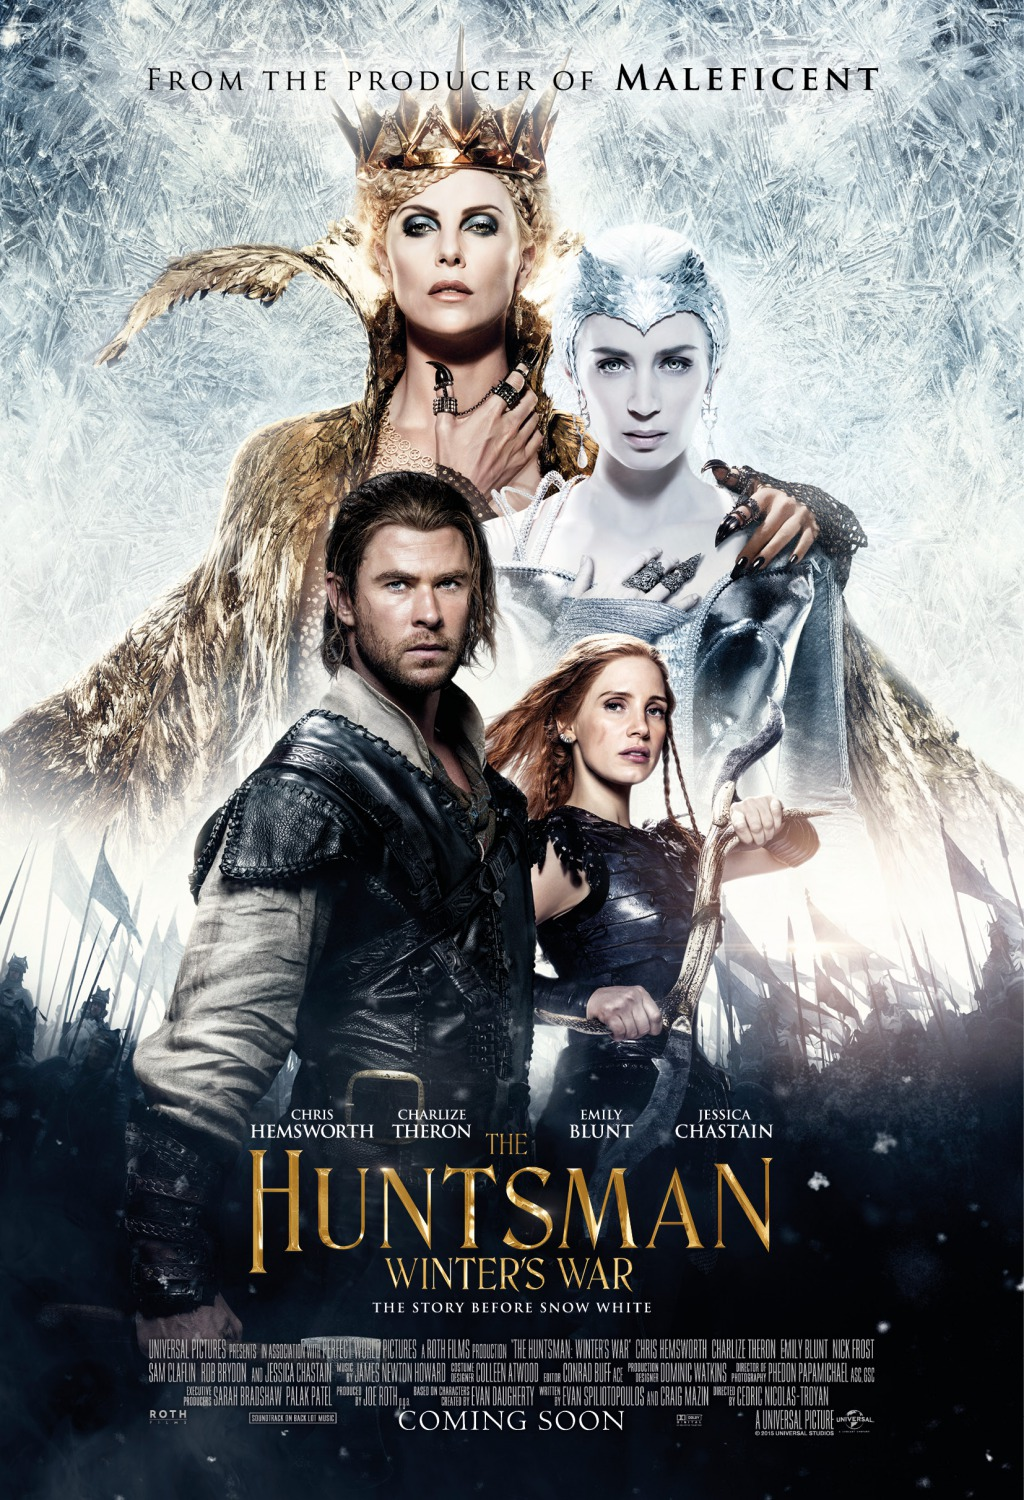 4 - The Huntsman Winter's War